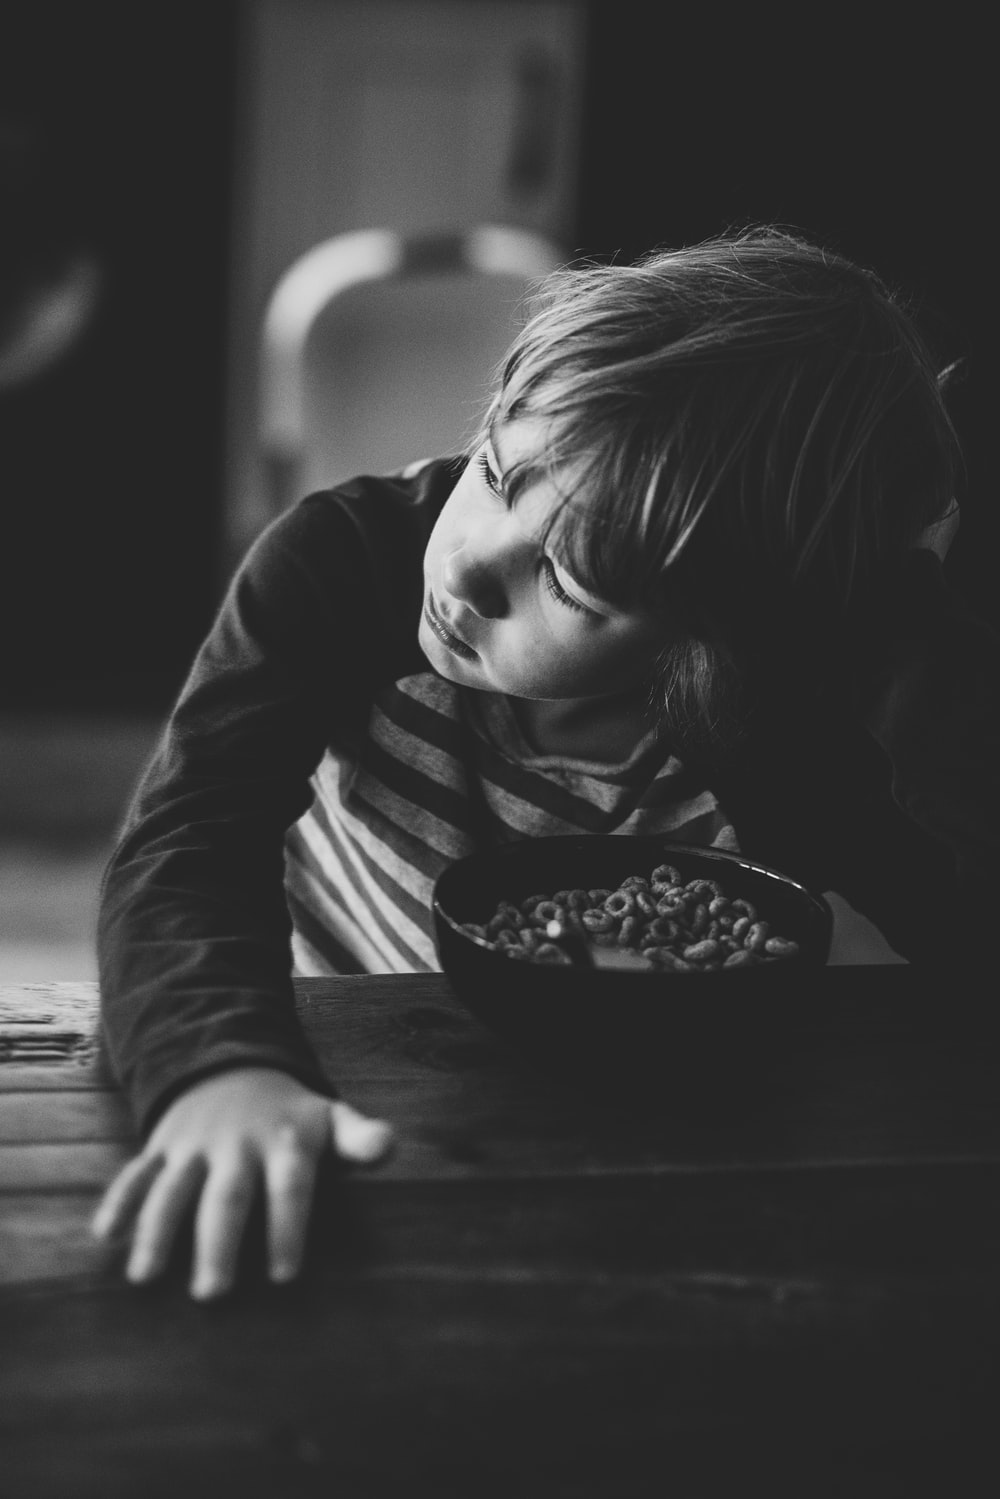 boy sitting by the table with bowl of cereals